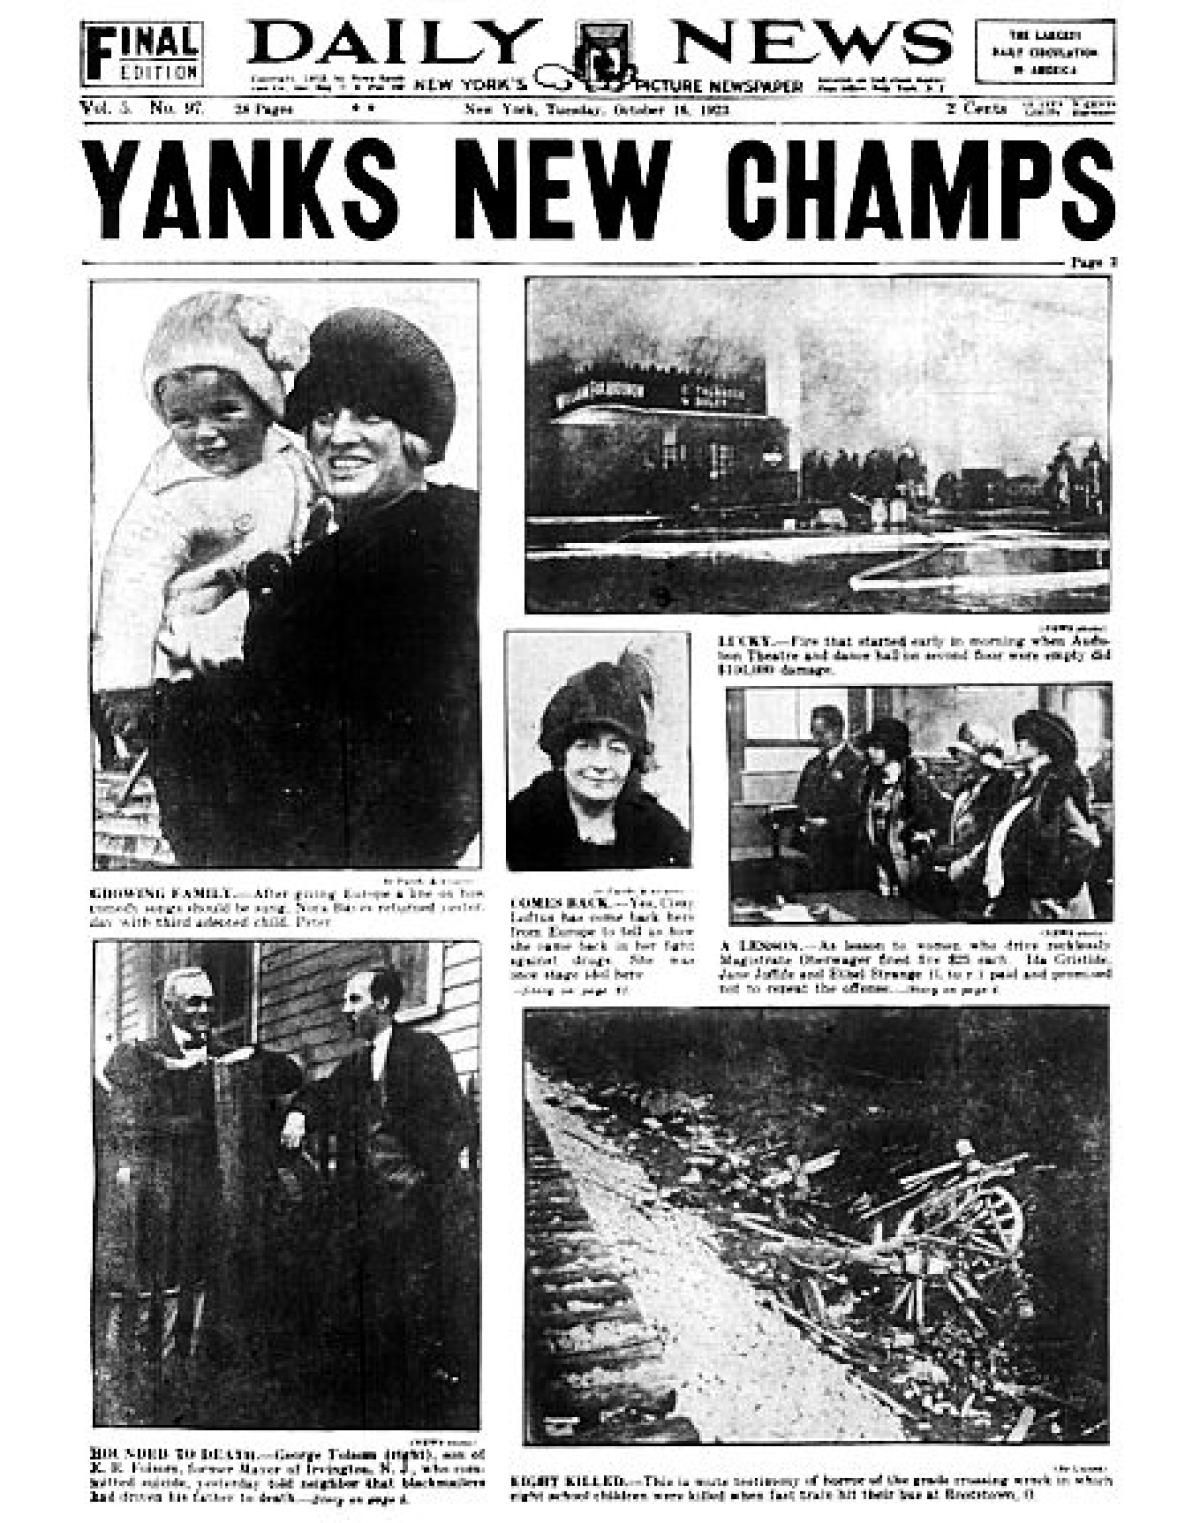 27 Yankees World Series Titles 27 Daily News Covers Slide 1 Yankees World Series World Series Yankees